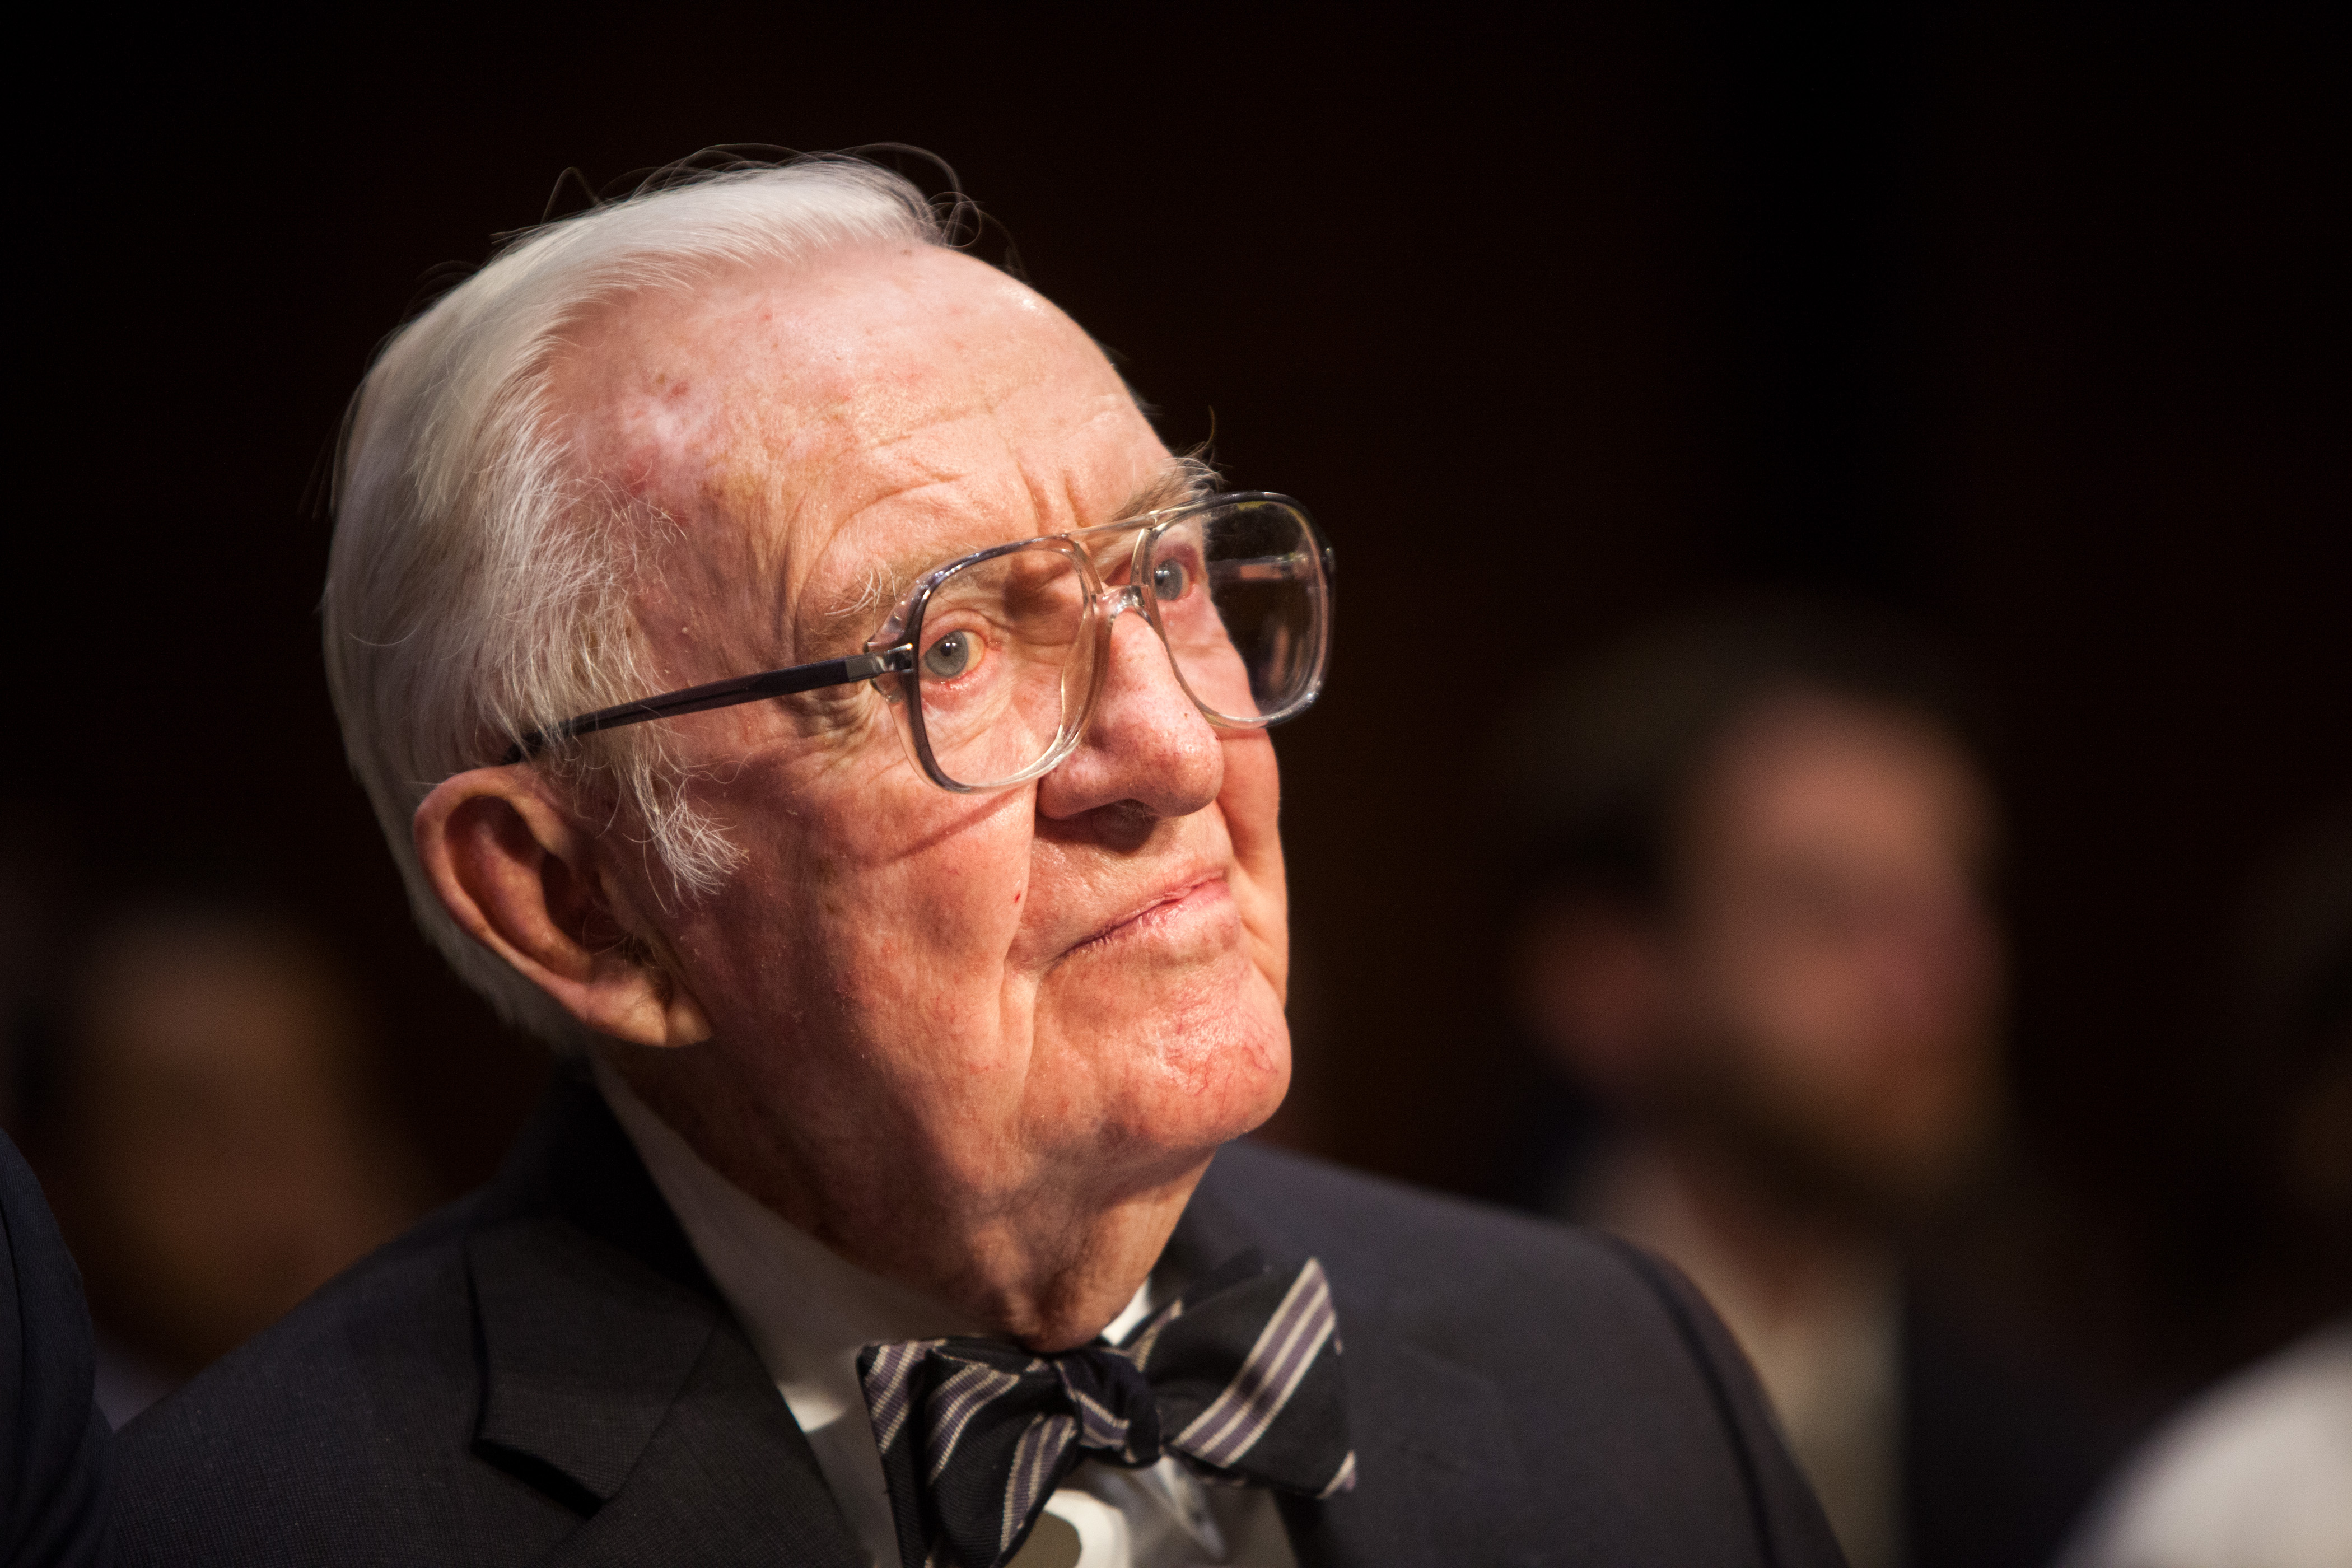 One of John Paul Stevens's last big ideas: repealing the 2nd Amendment